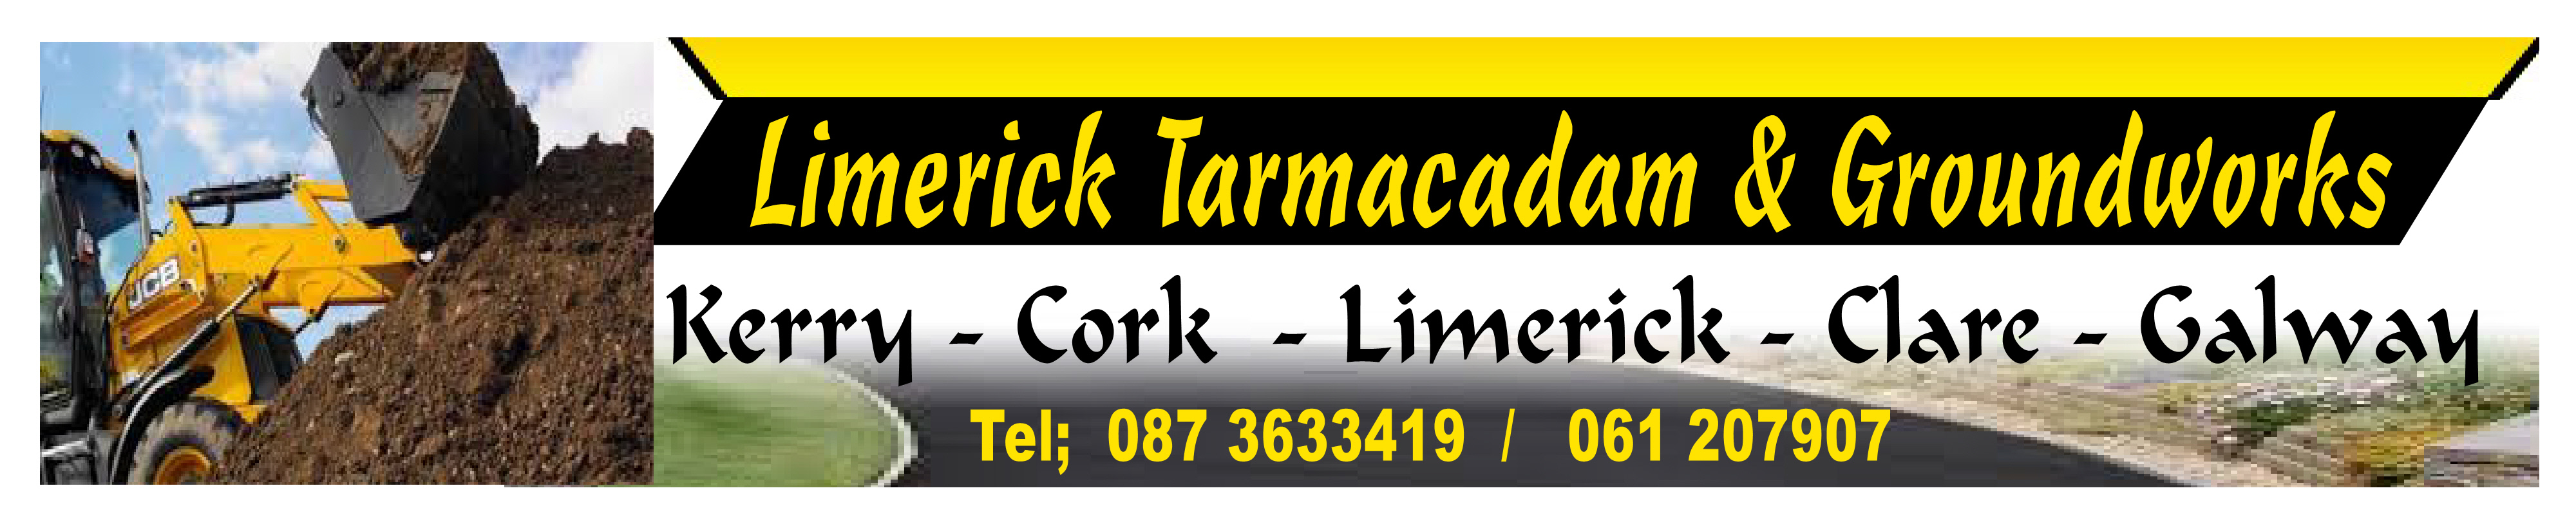 Limerick Groundworks And Tarmacadam Tarmacadam In